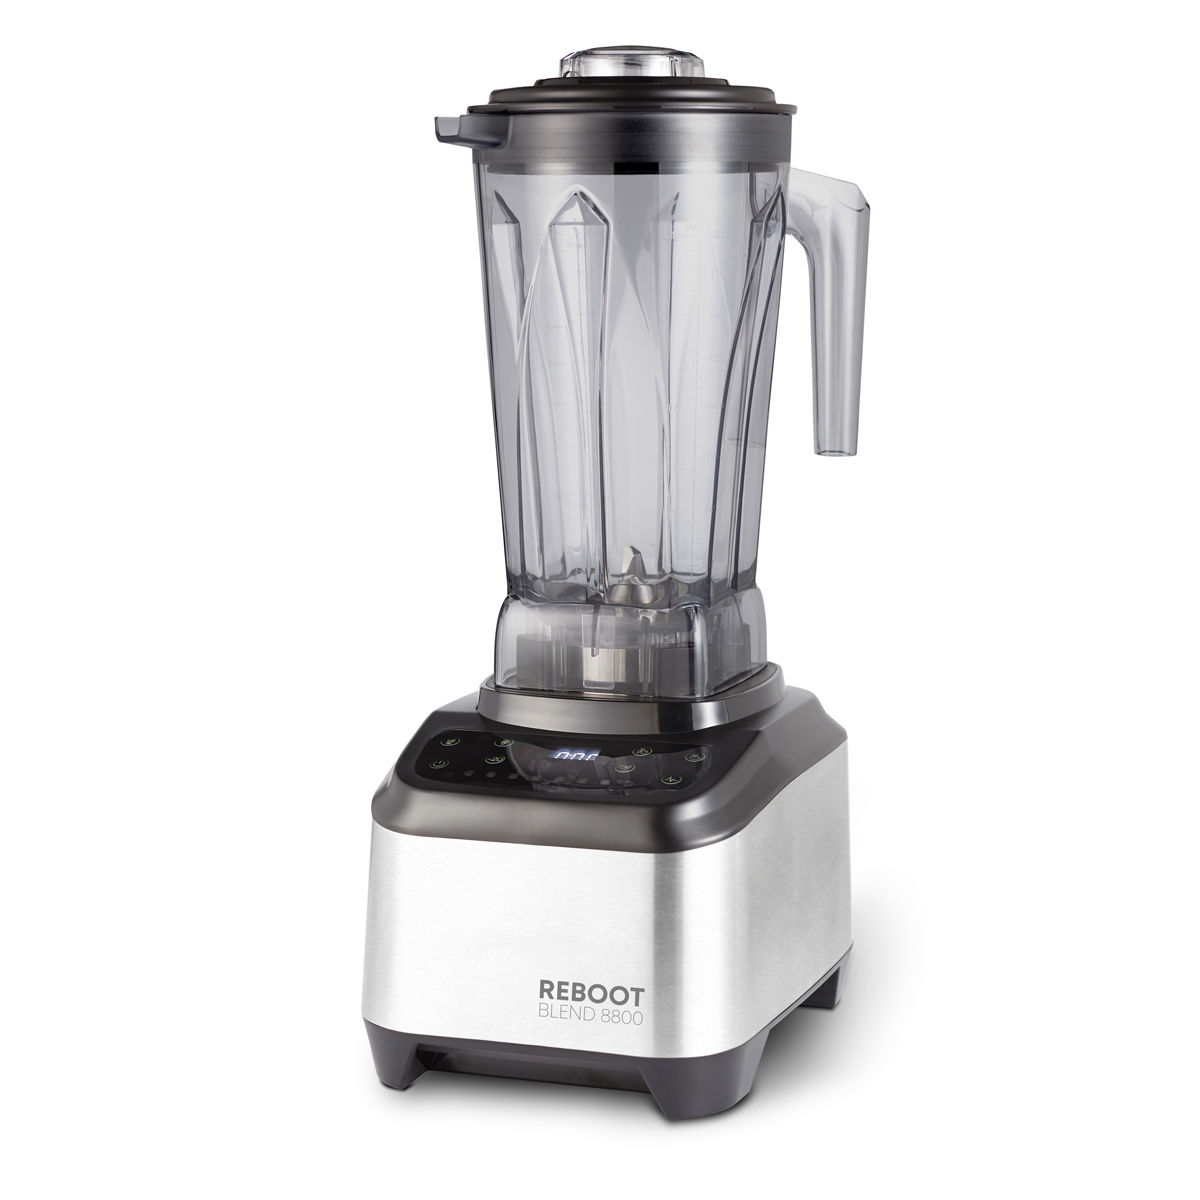 เครื่องปั่นเพื่อการพาณิชย์ Reboot blend 8800 commercial blender.5 preset program cycles for smoothies, fruit/vegetable shake, hot drinks/soups and ice cream./sorbets. Manual step less speed control and pulse. Blender knife: 6 blade 304 stainless steel using double NSK bearings from Japan and double leak seal for improved durability. 1500 watt. BPA free plastic